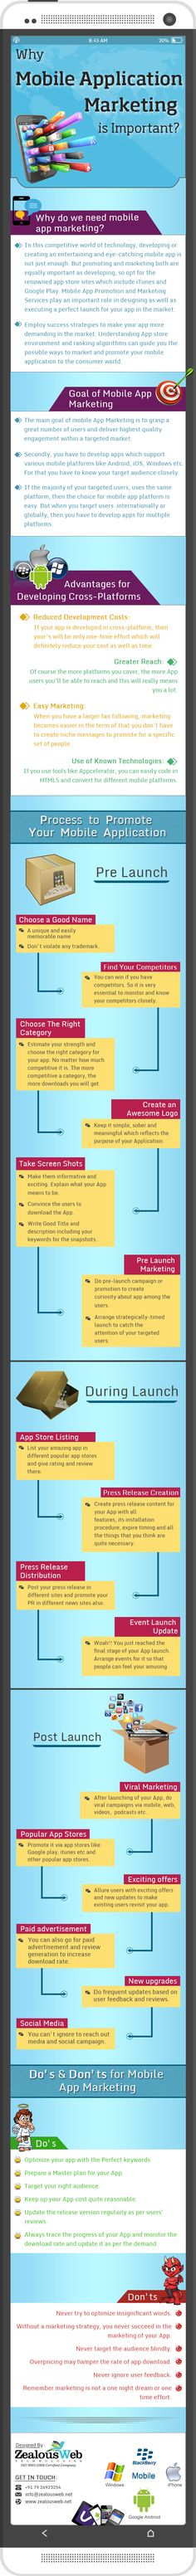 #INFOgraphic > Mobile Apps Marketing 101:   > http://infographicsmania.com/mobile-apps-marketing-101/?utm_source=Pinterest&utm_medium=INFOGRAPHICSMANIA&utm_campaign=SNAP